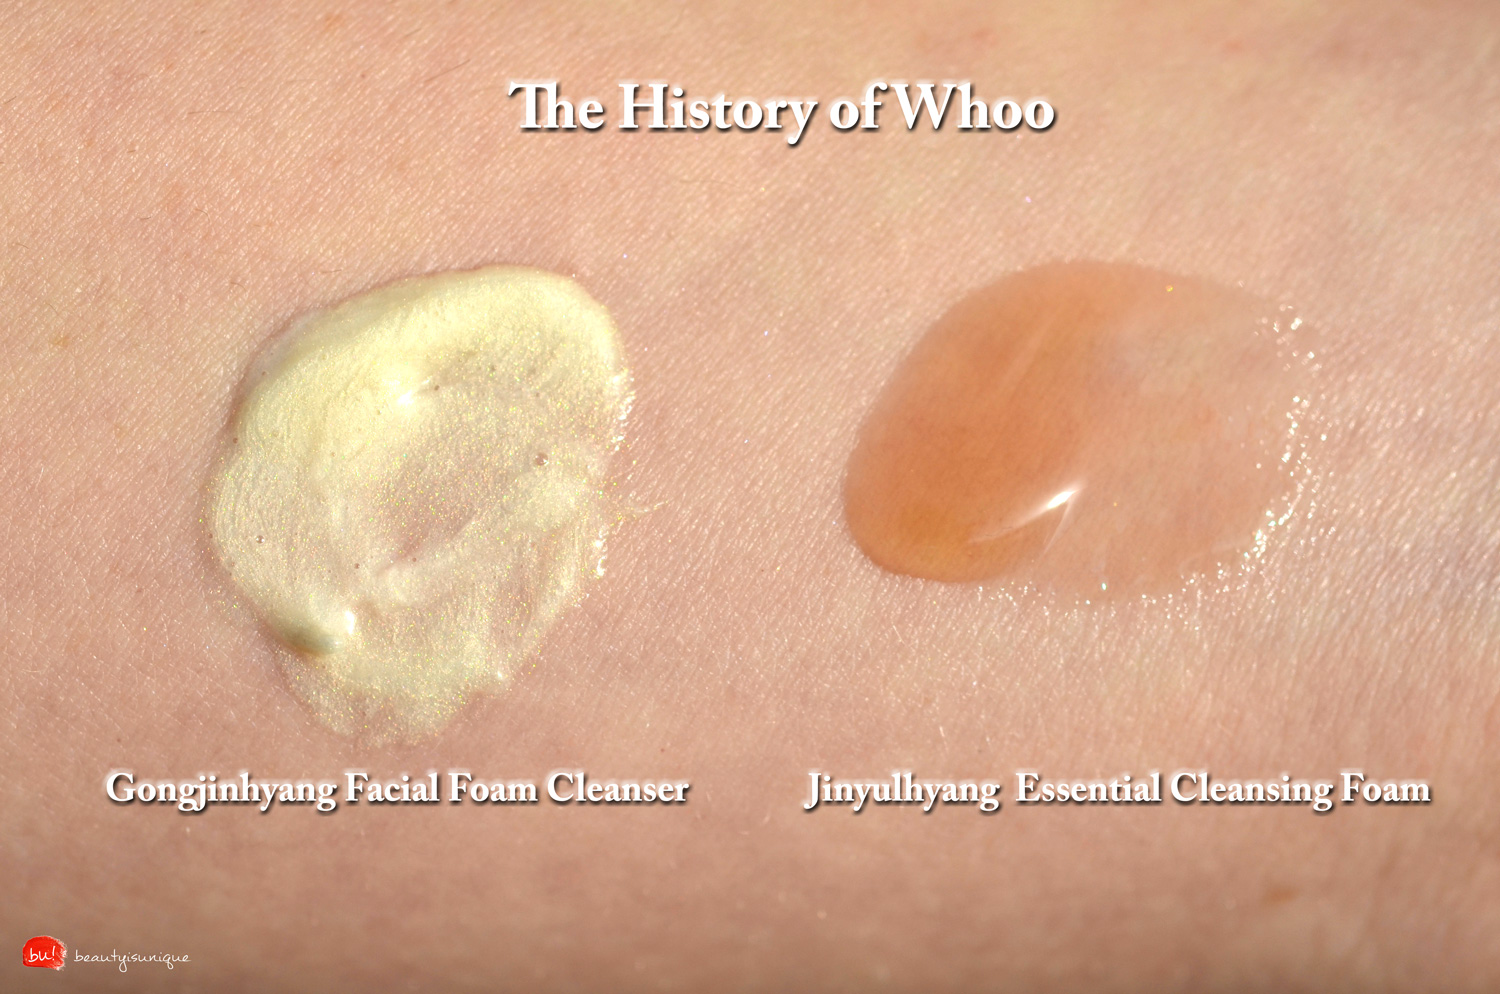 the-history-of-whoo-junyulhuang-essential-cleansing-foam